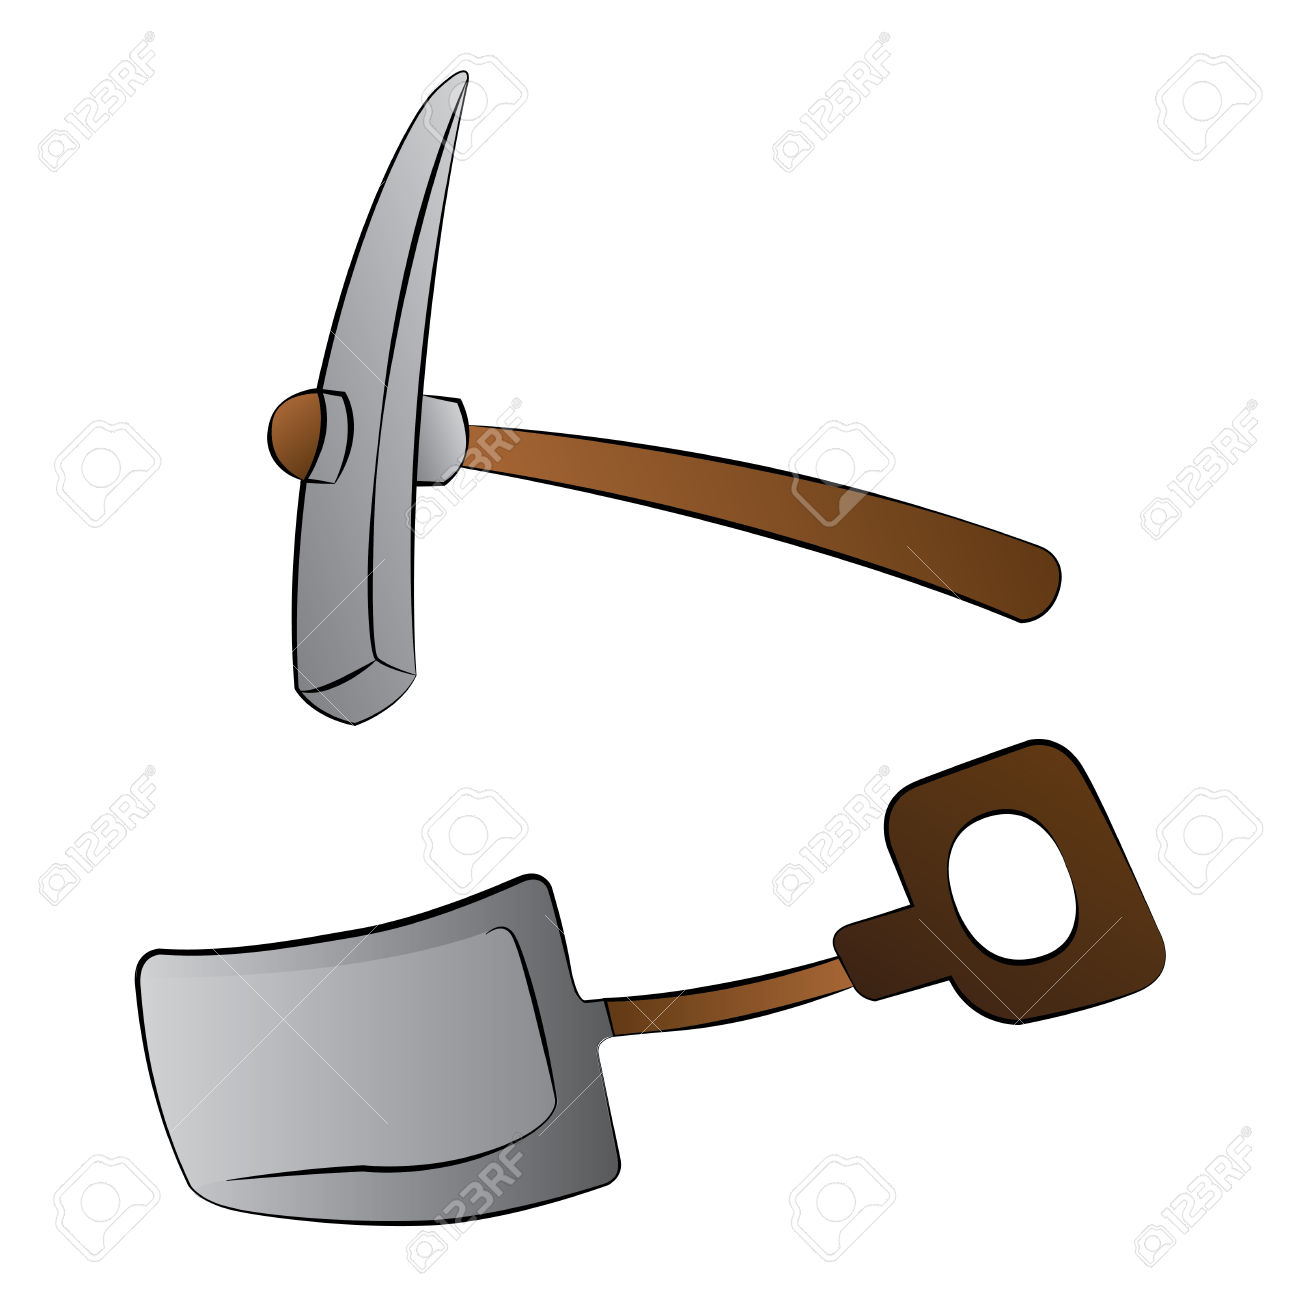 Black Outline Vector Shovel And Mattock On White Background.